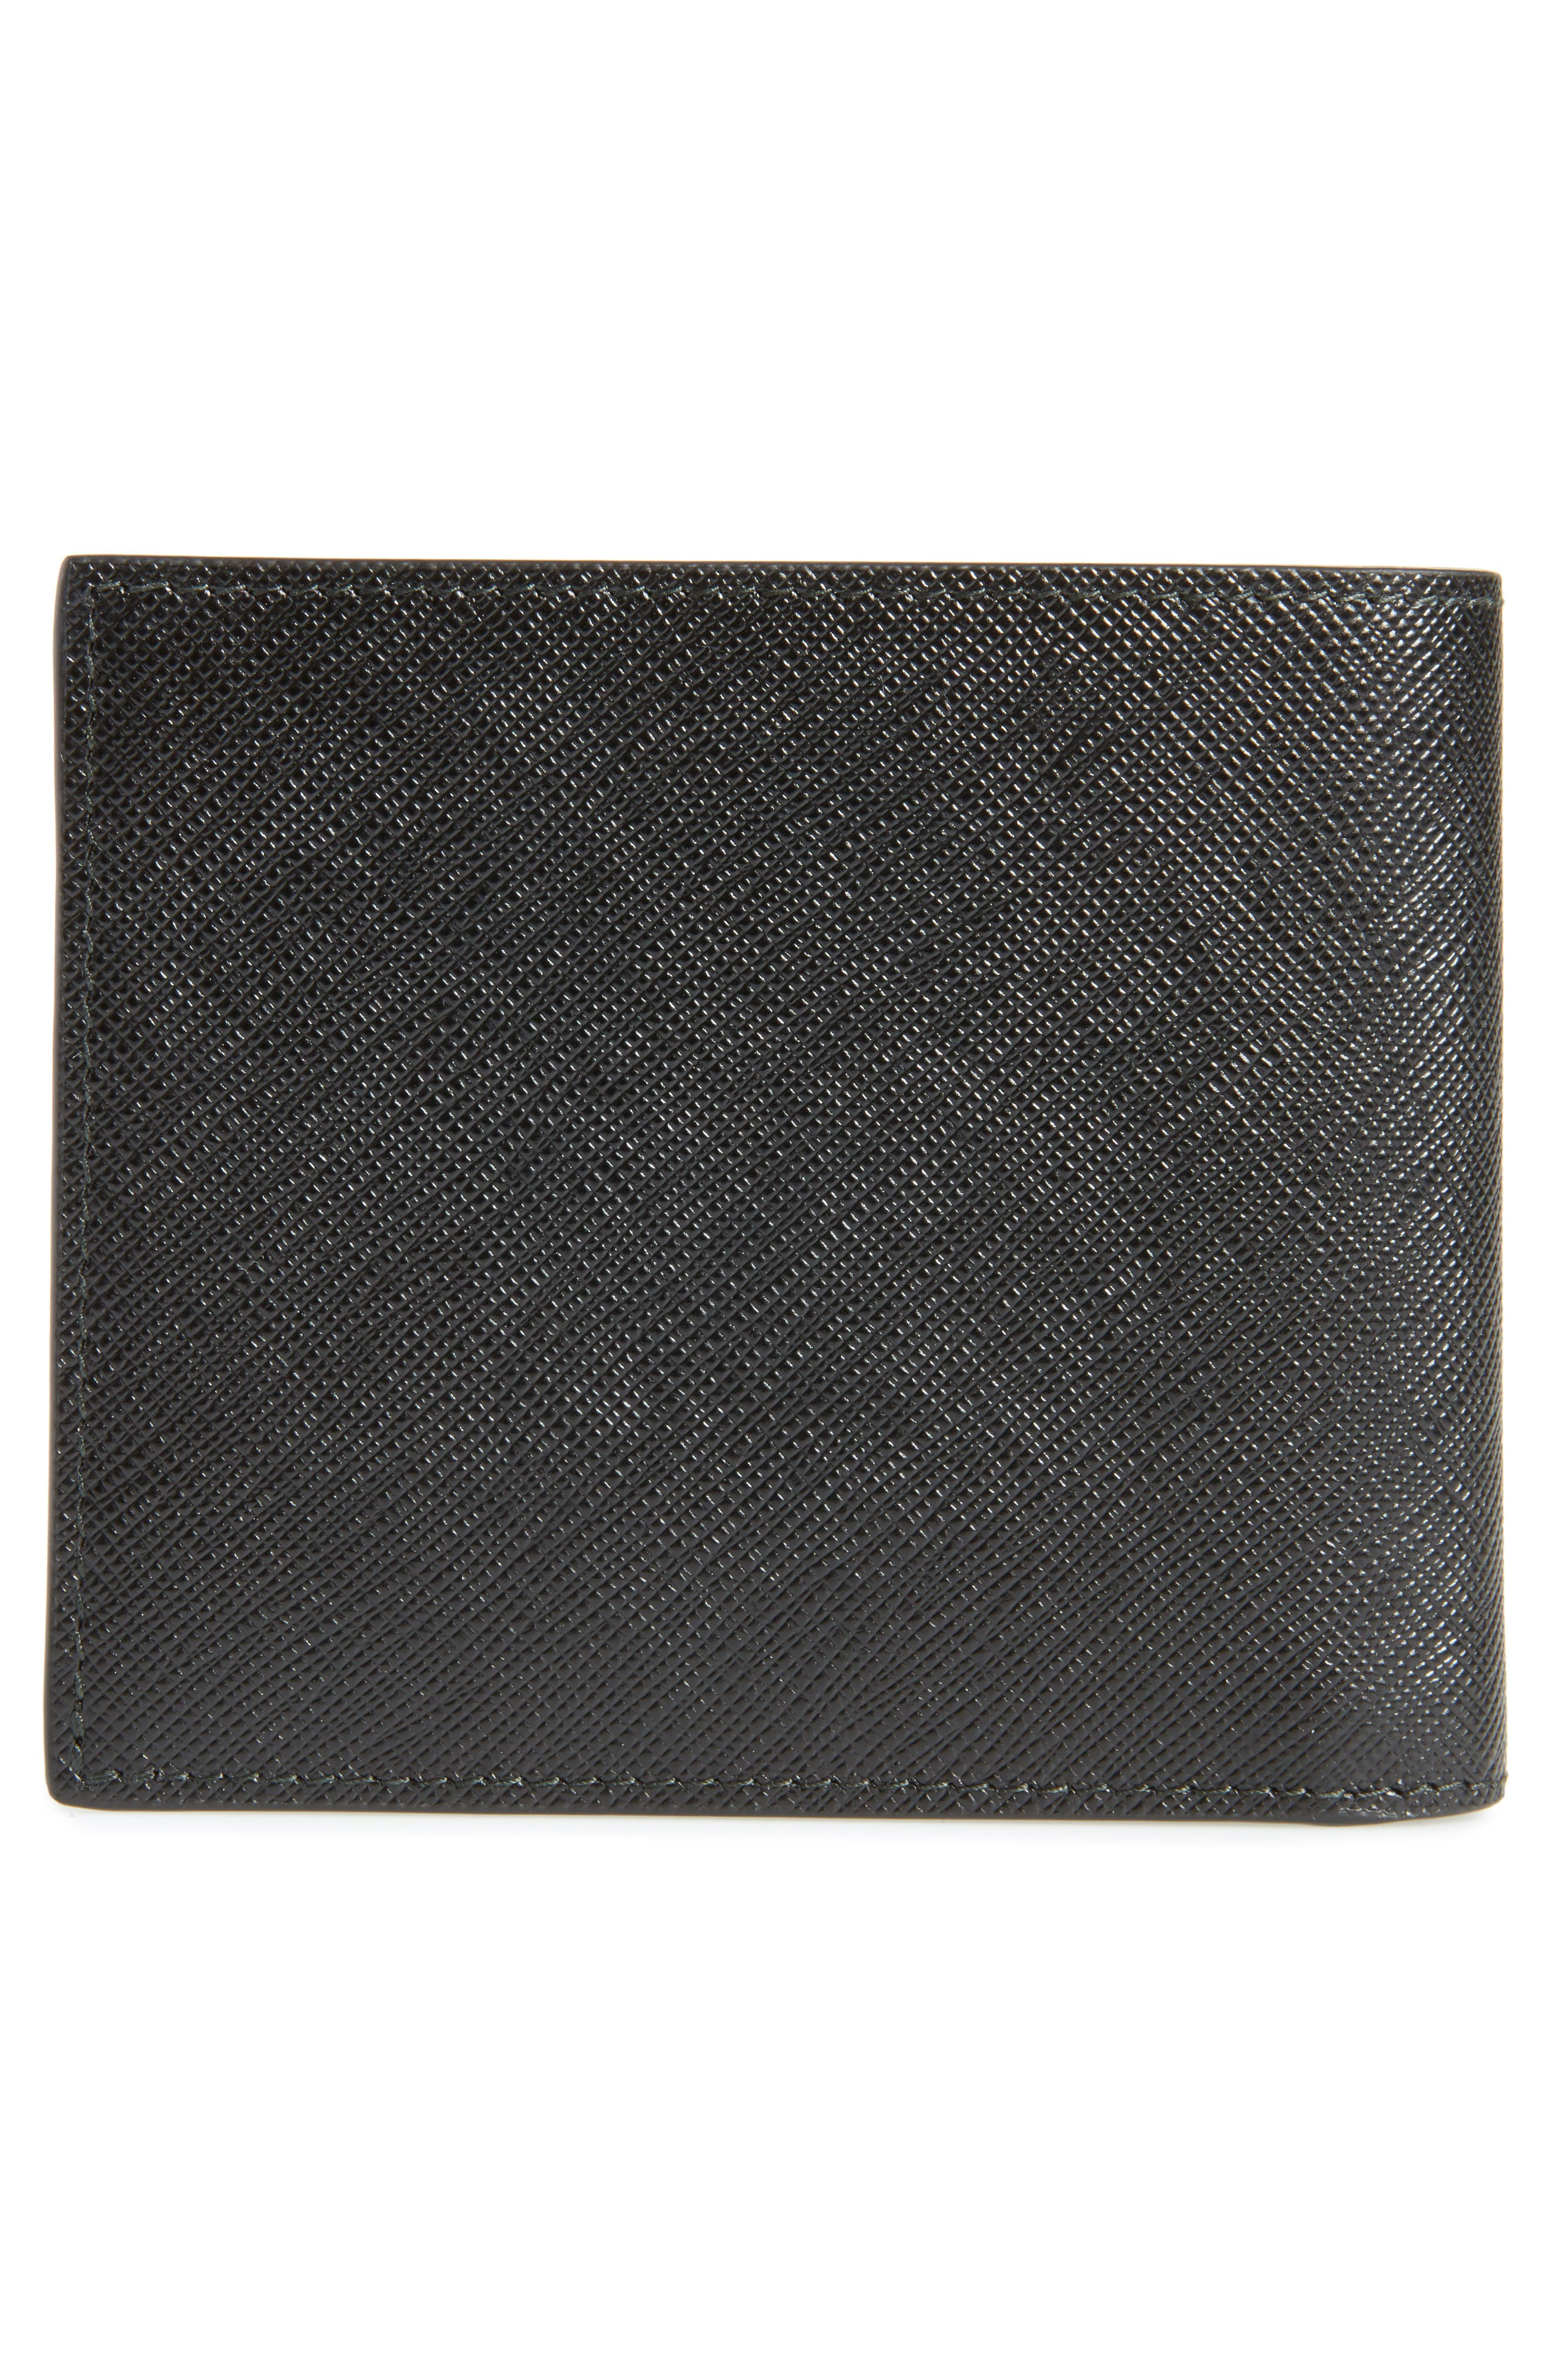 Saffiano Leather Billfold Wallet,                             Alternate thumbnail 3, color,                             002